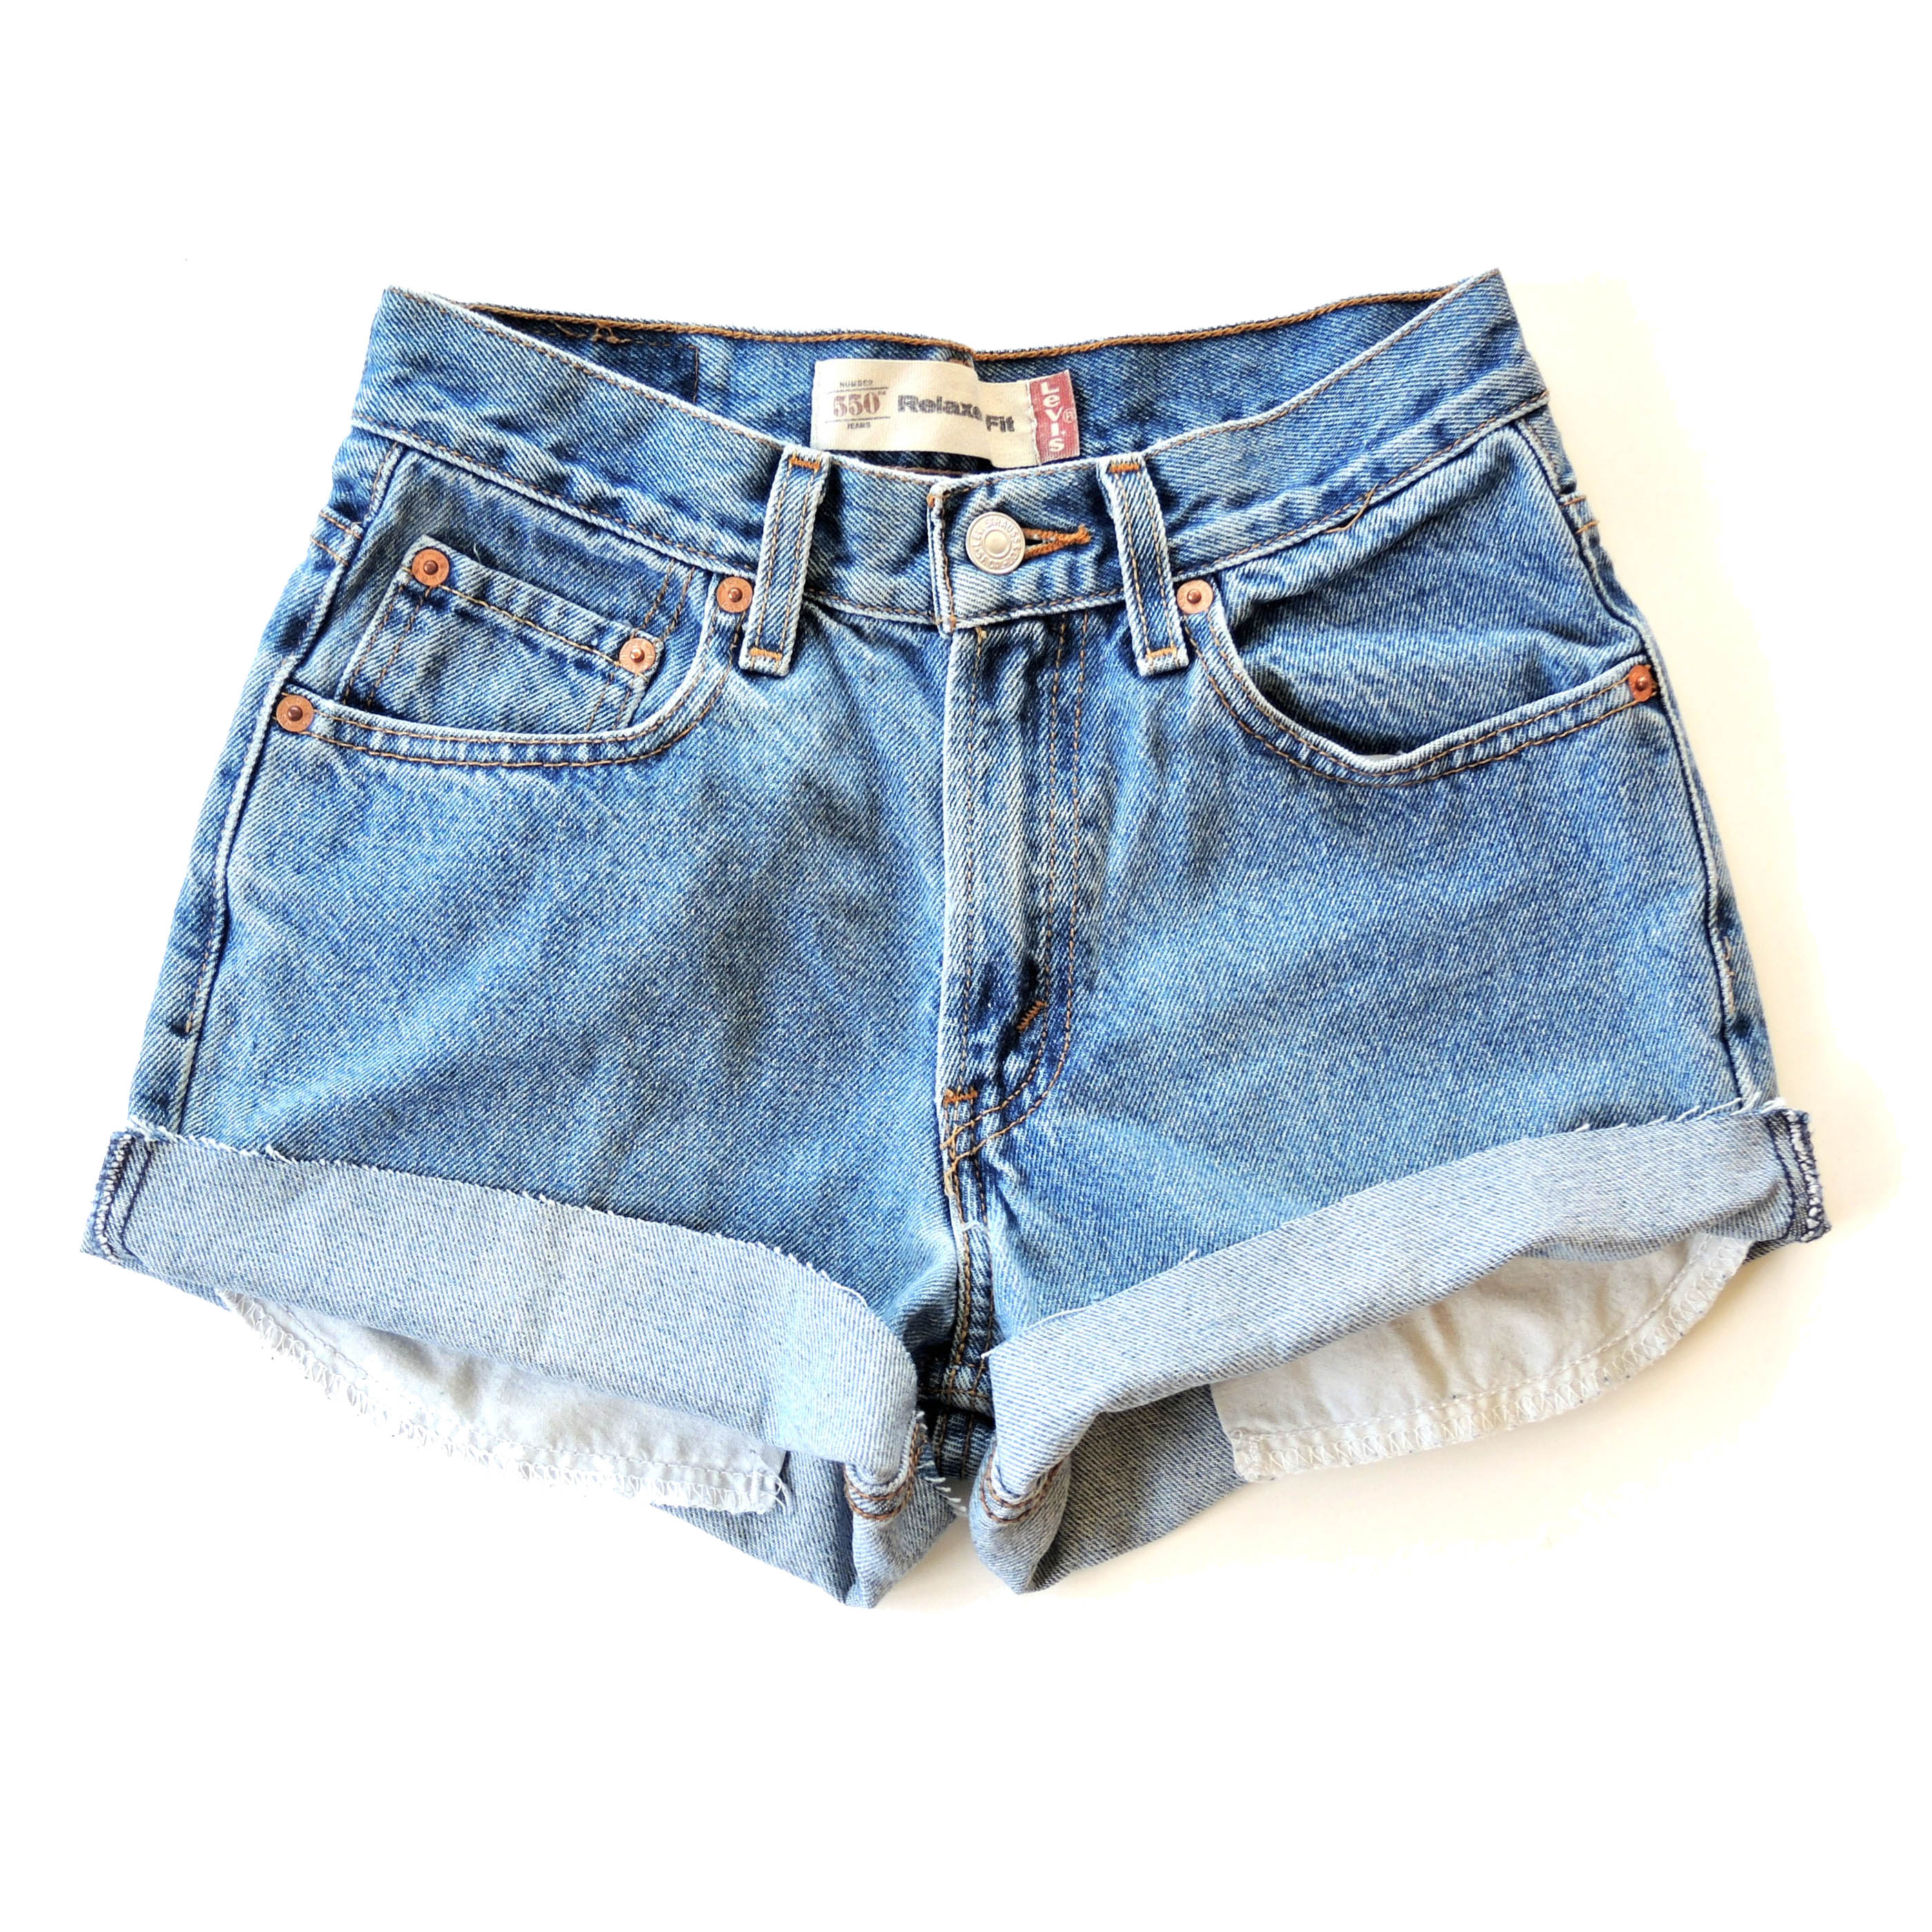 We have casual dress shorts, high waisted shorts, jean shorts and black cargo shorts. Our shorts can be worn with your favorite tank top shirt or pretty blouses. You can even wear heels and look fabulous wearing our Sexy Personality Jeans Shorts.